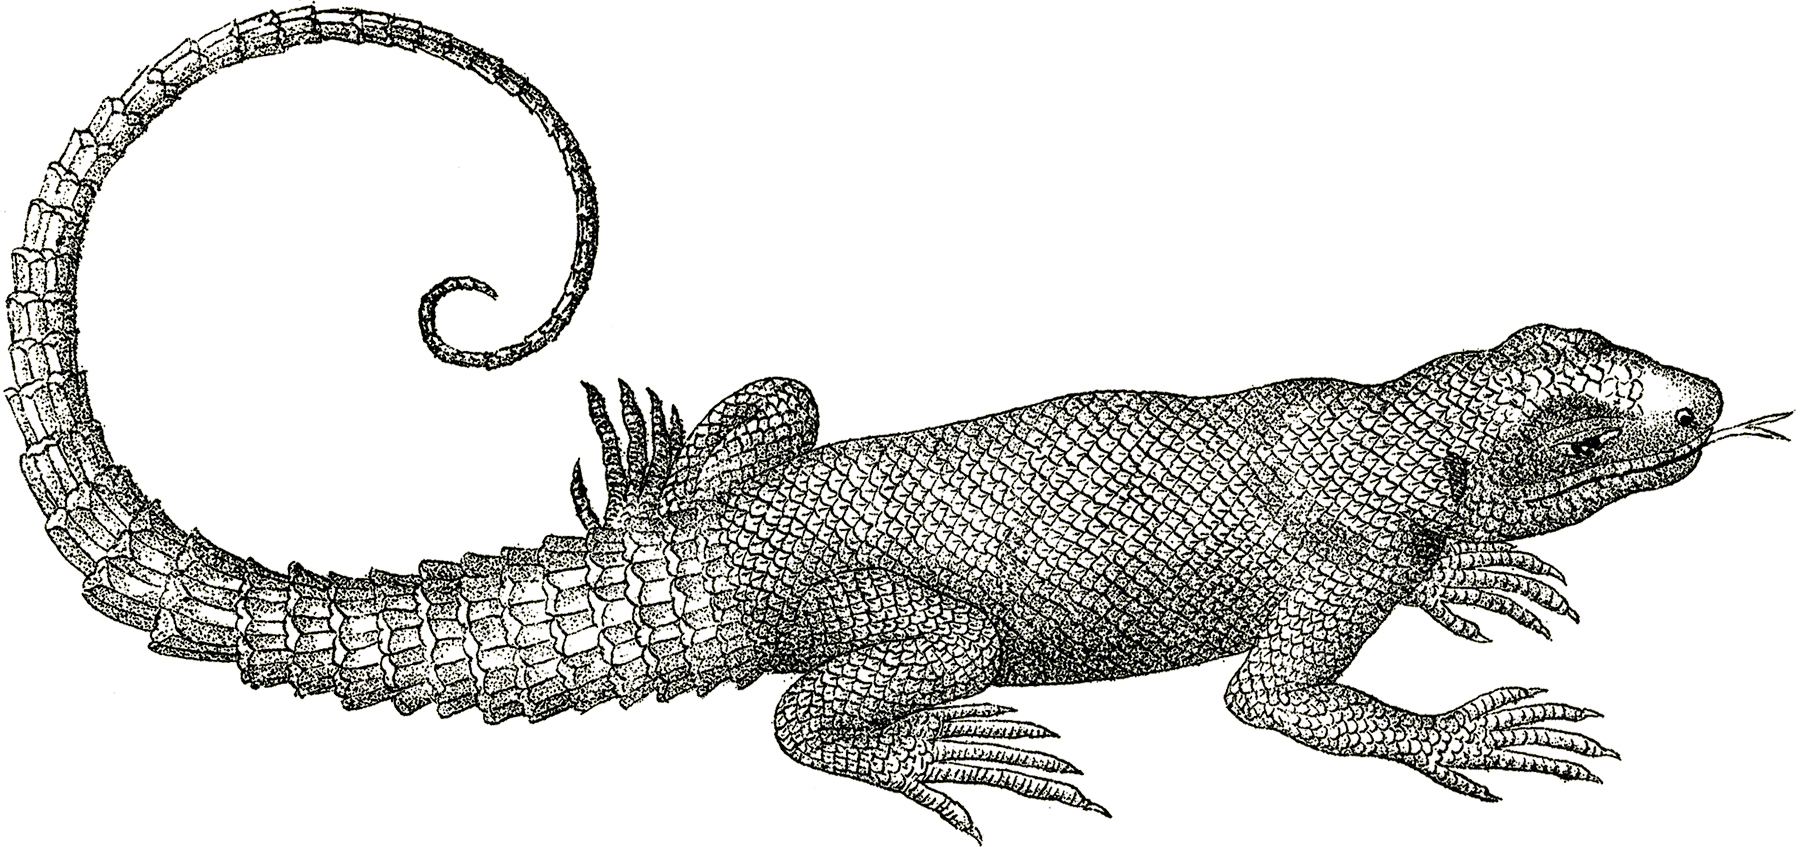 Monitor Lizard clipart #4, Download drawings